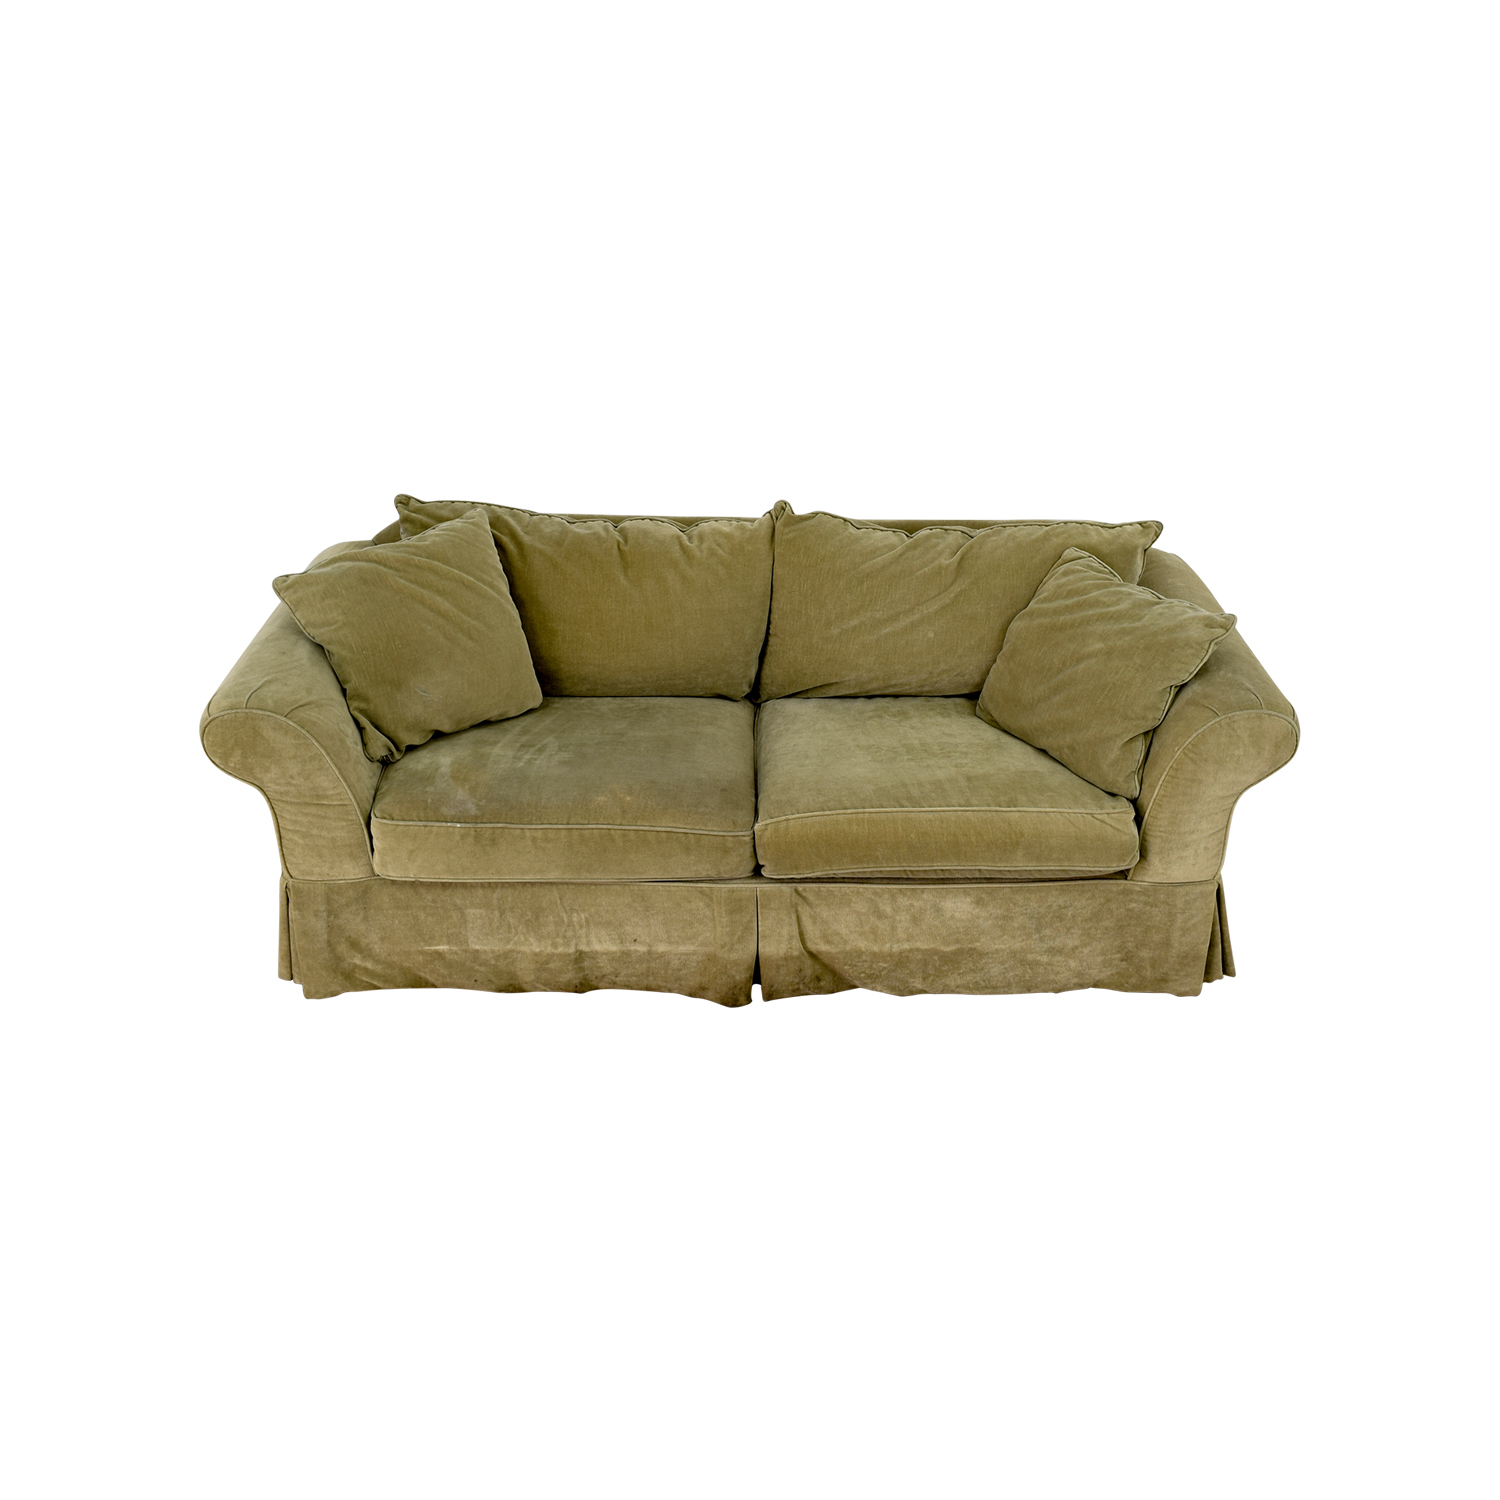 Domain Domain Green Skirted Couch second hand